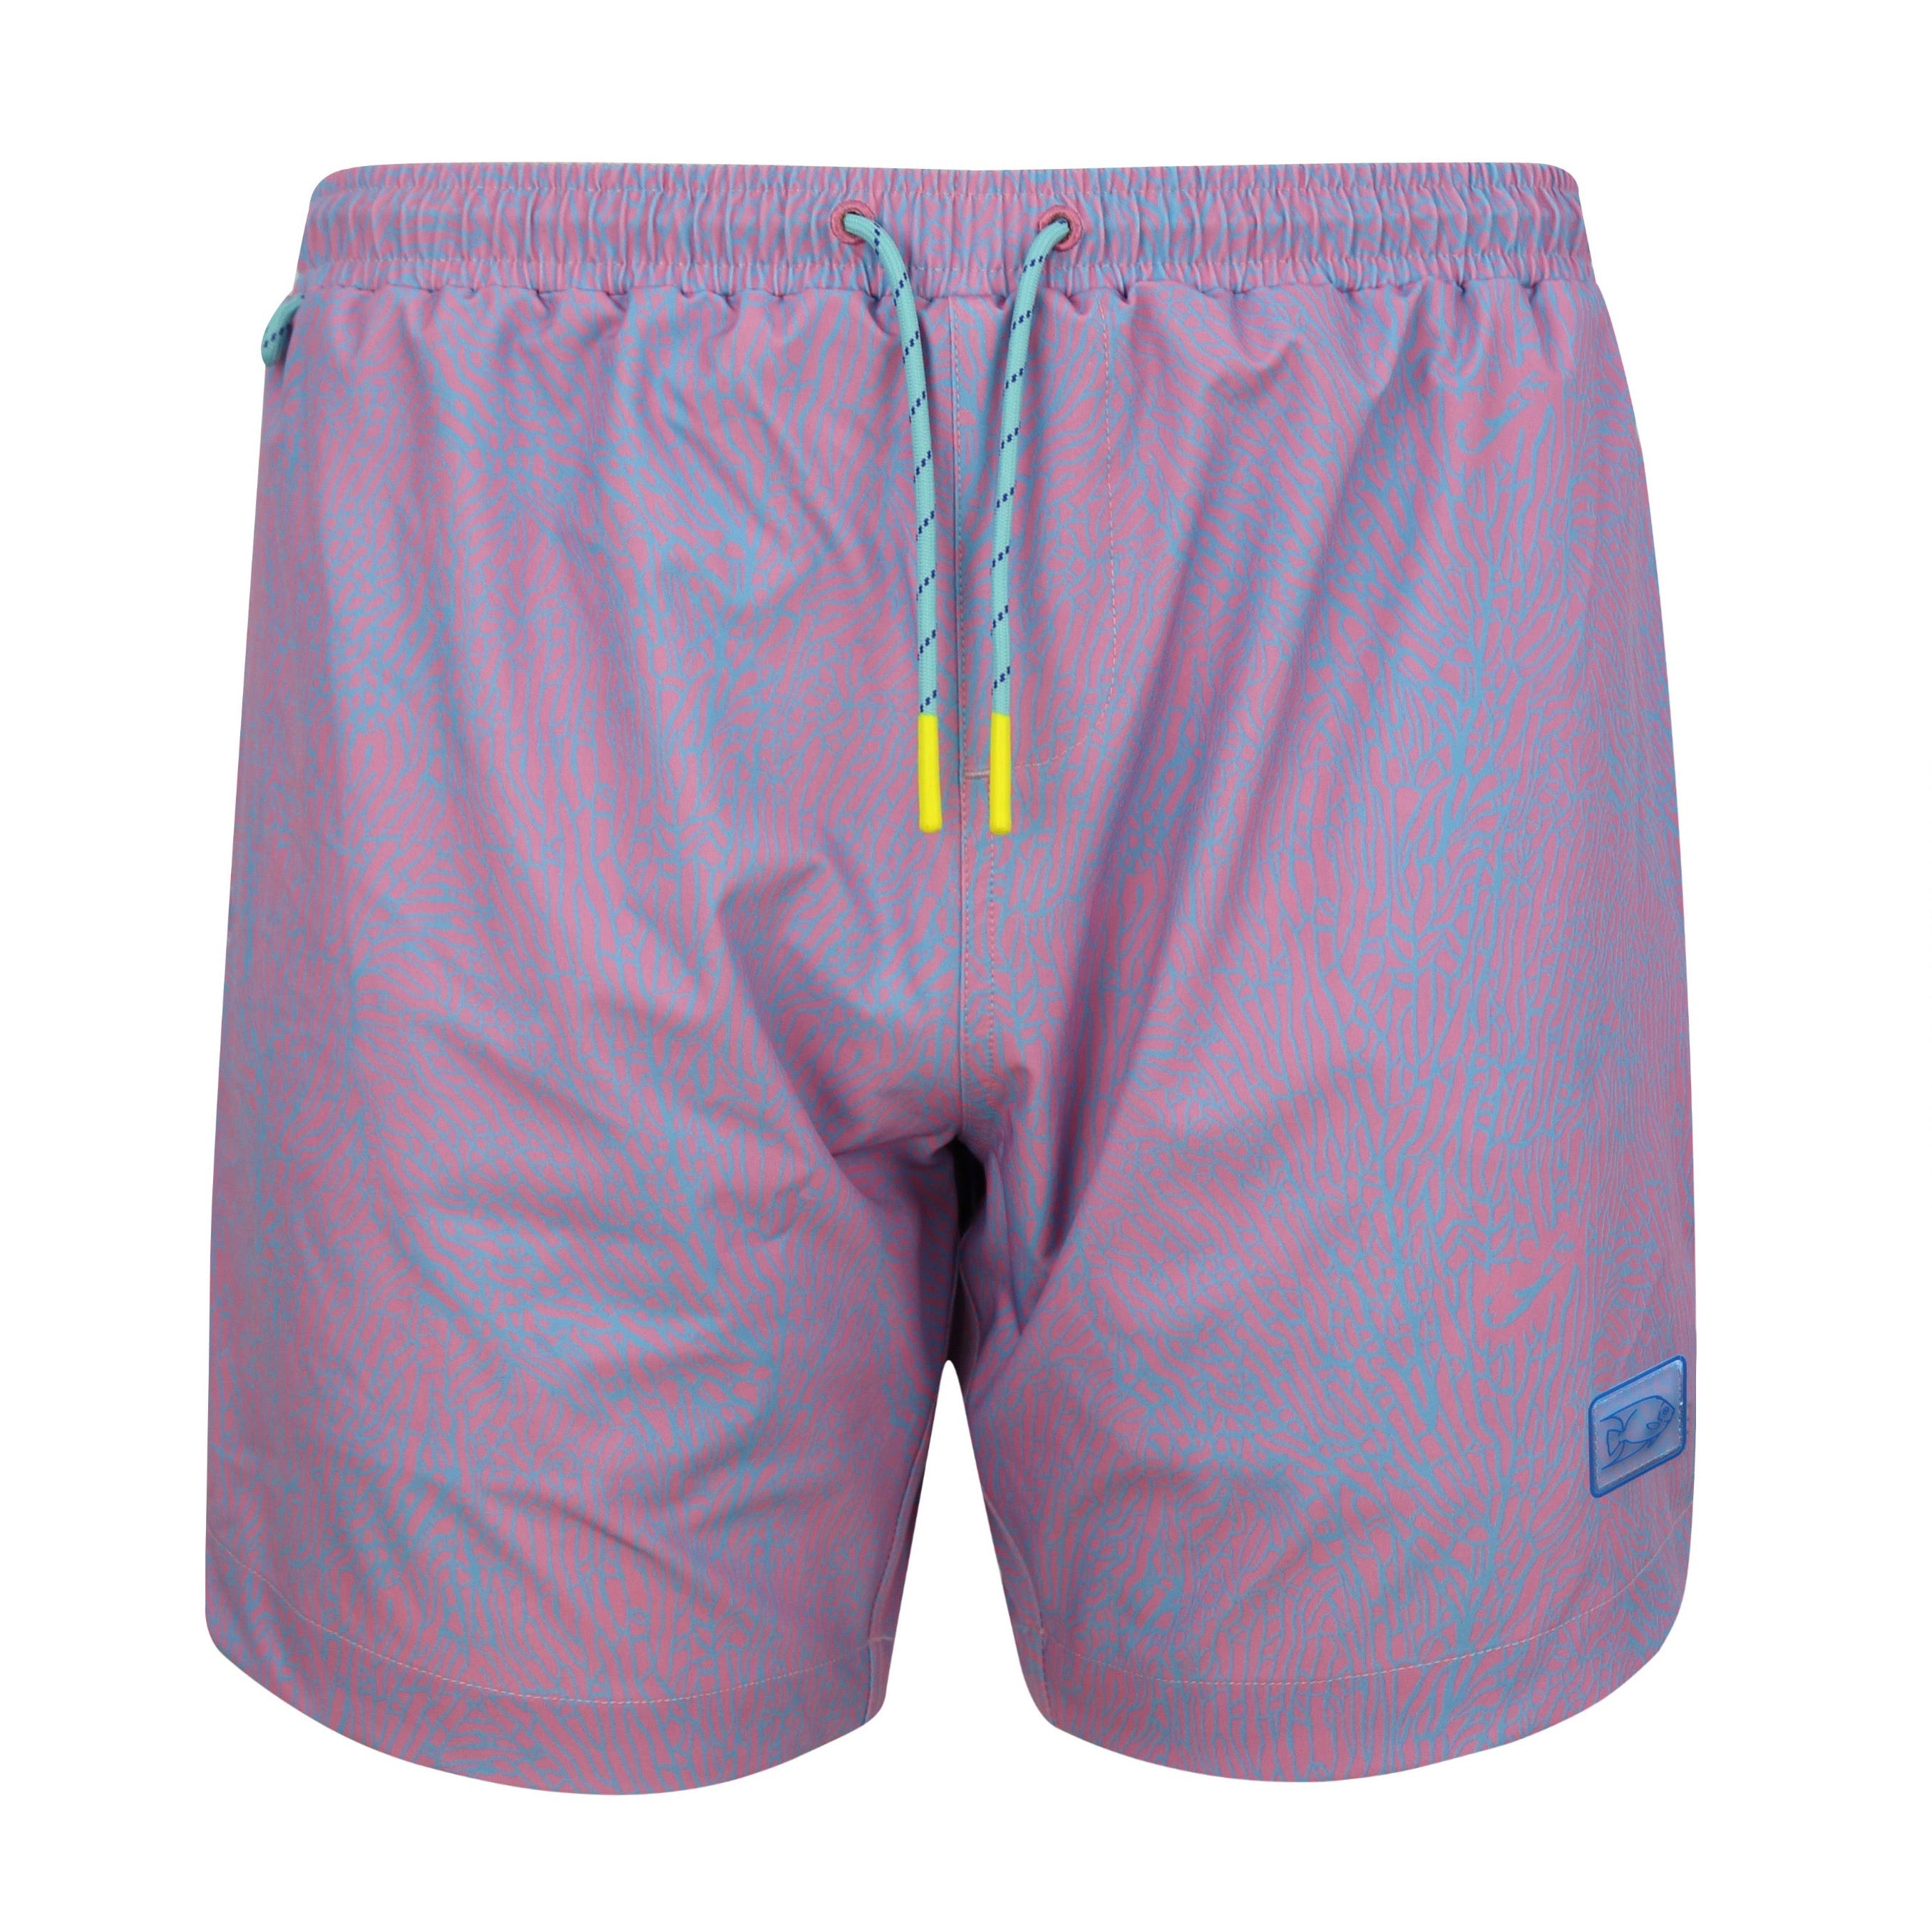 SEA FAN PINK SWIM TRUNK